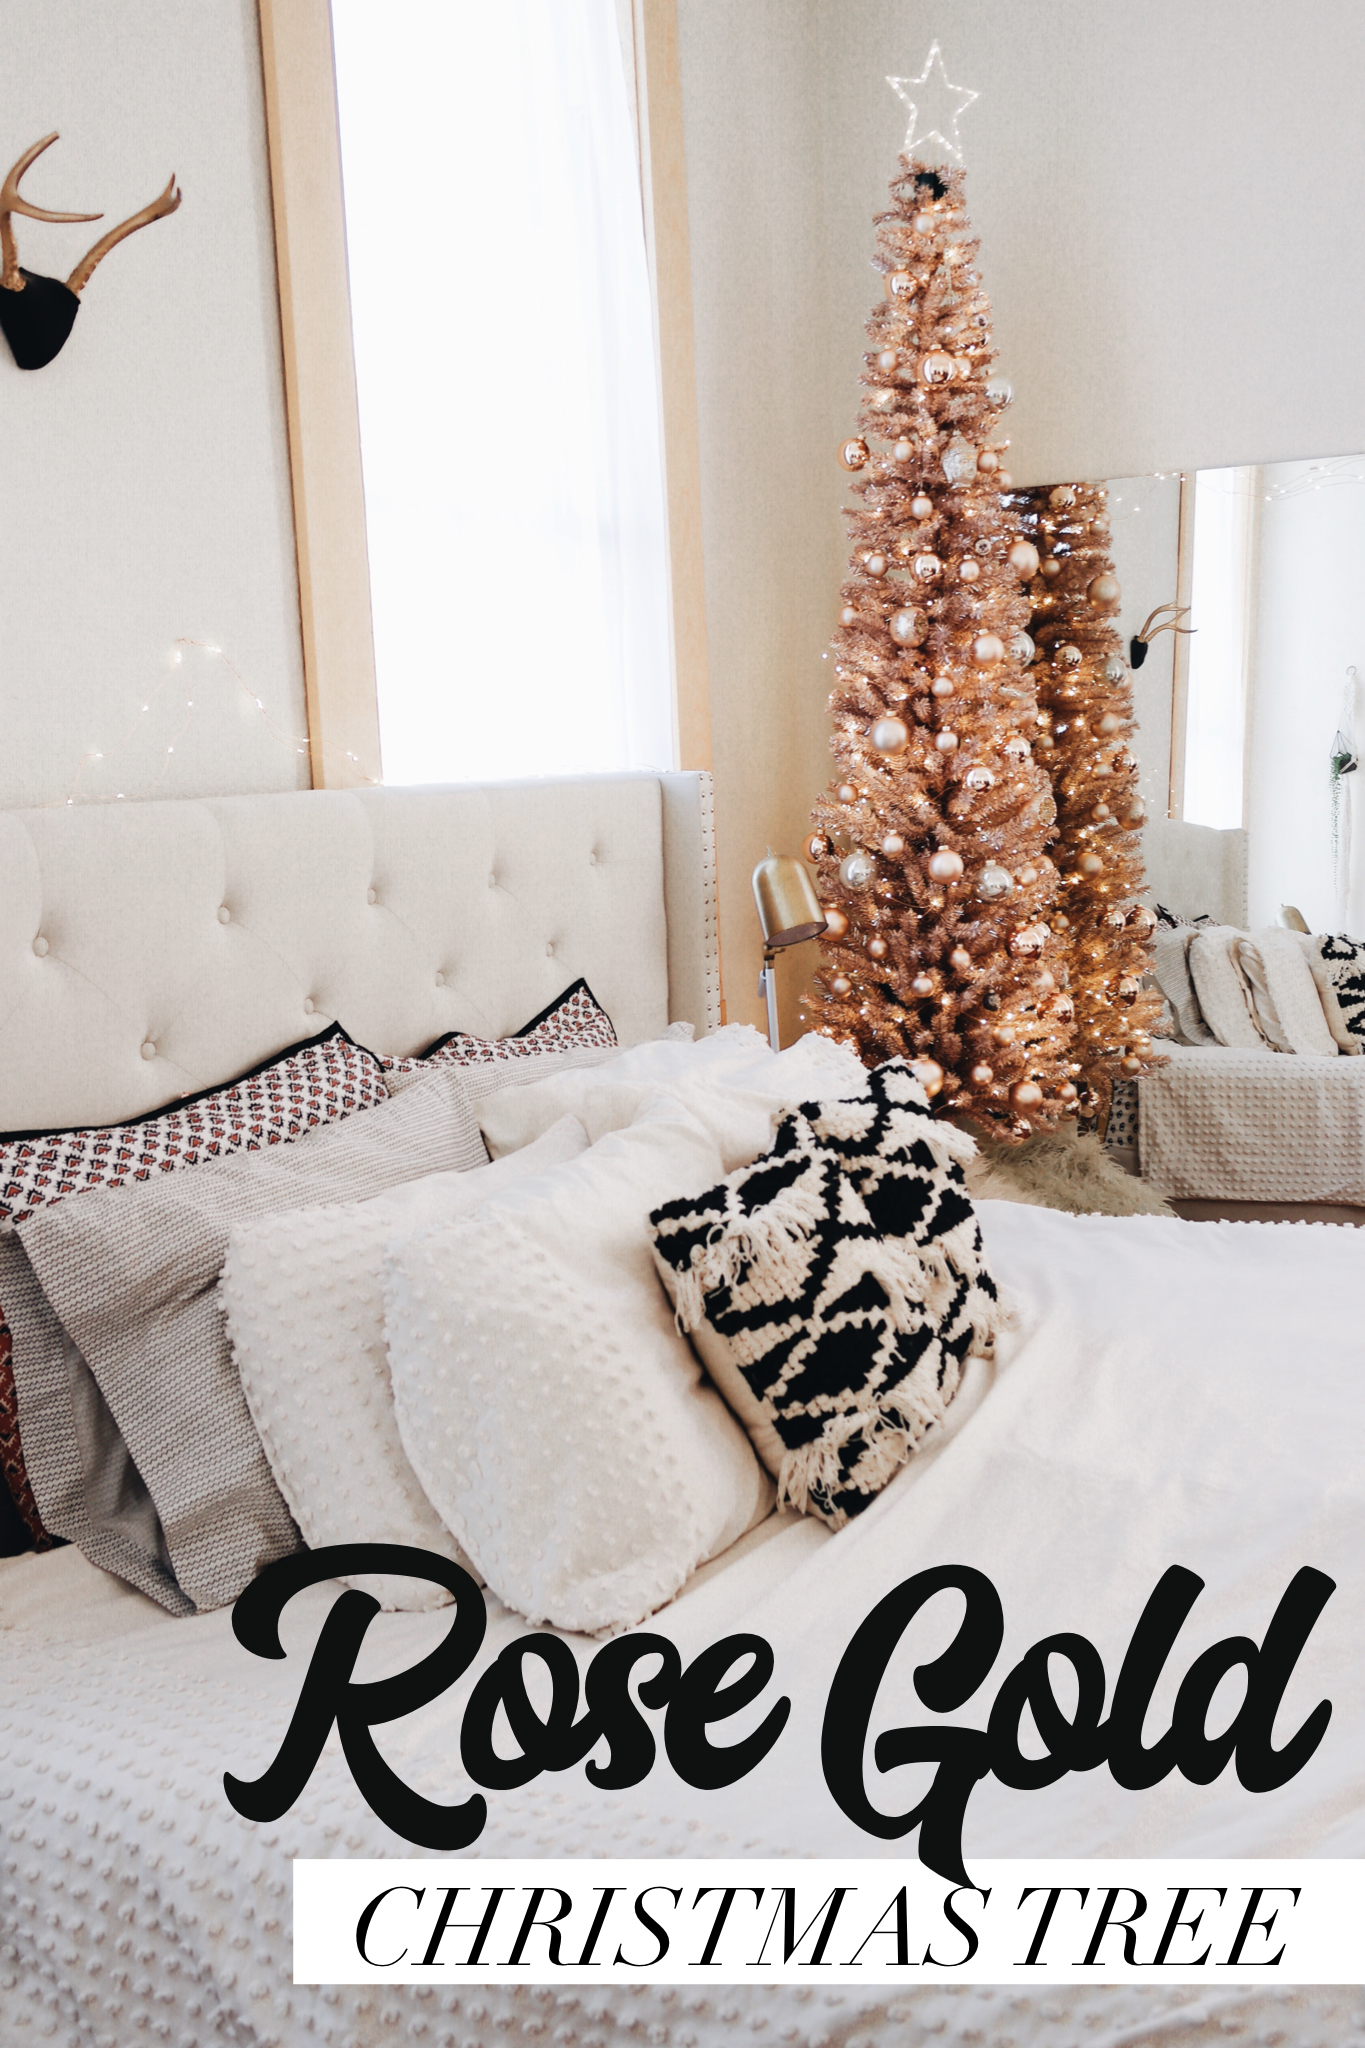 Rose Gold Christmas Tree Samantha Hauger